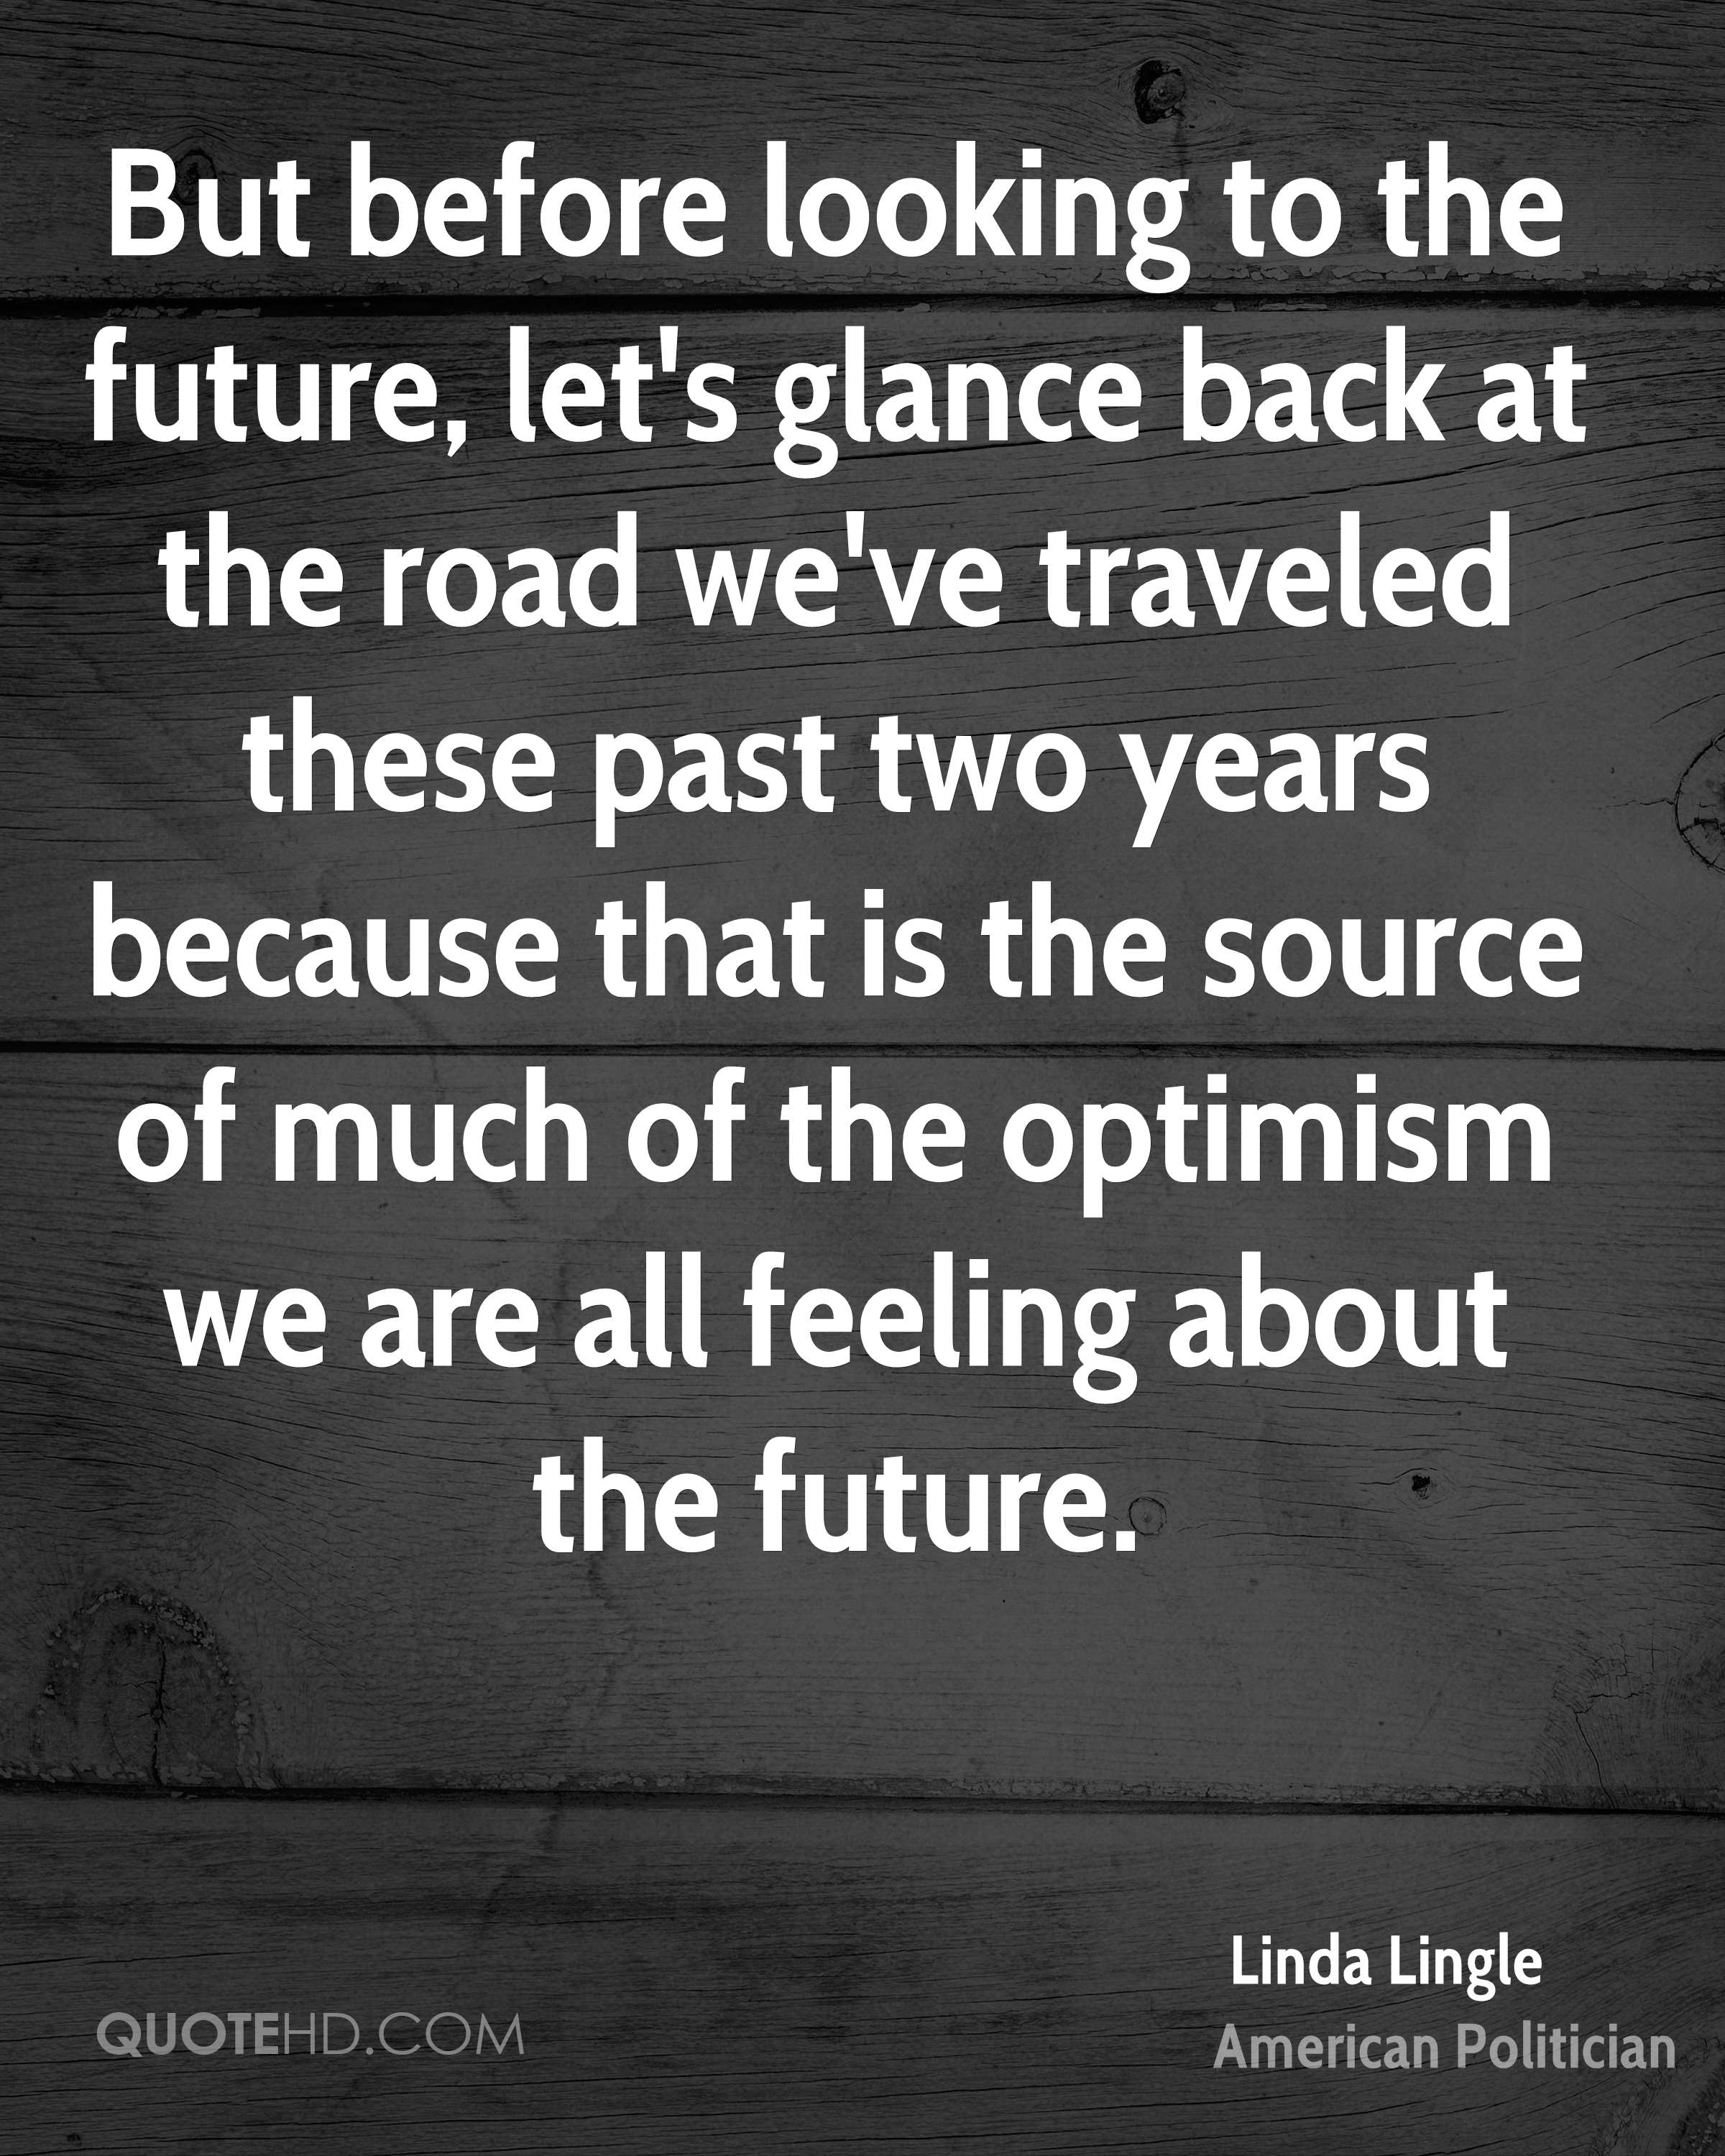 But before looking to the future, let's glance back at the road we've traveled these past two years because that is the source of much of the optimism we are all feeling about the future.